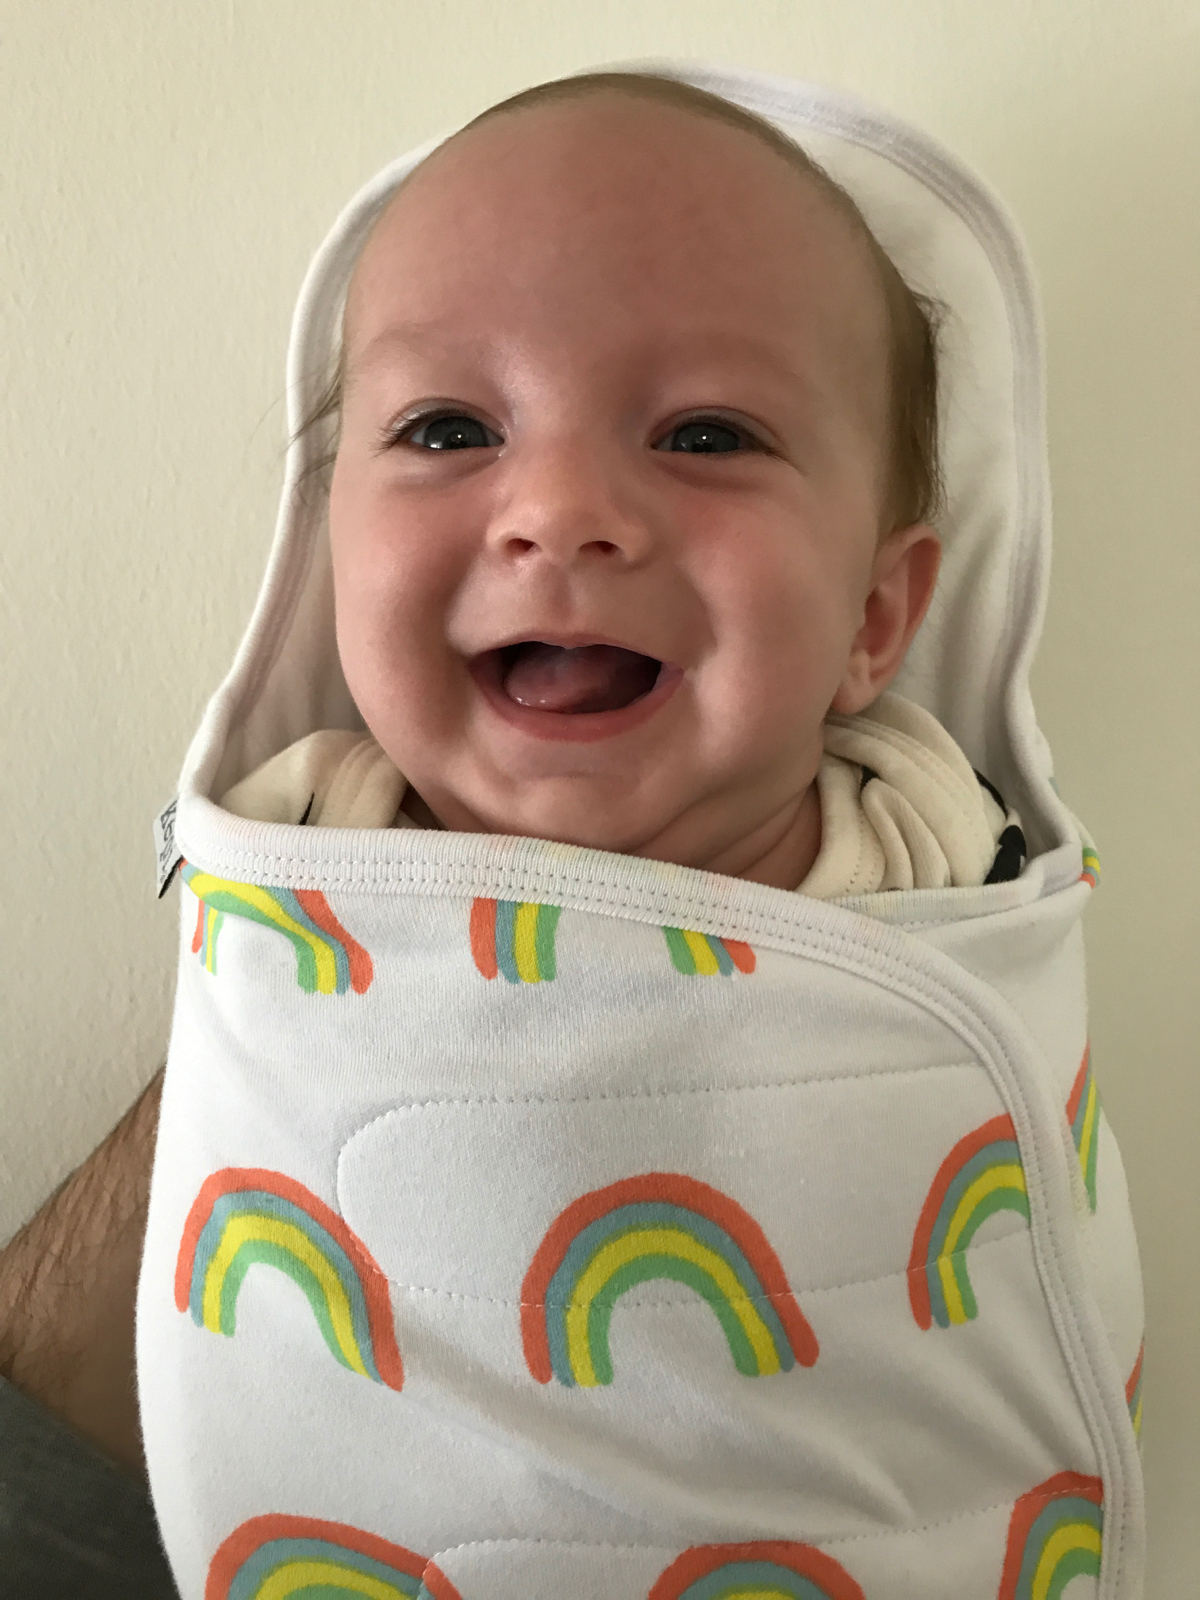 My big rainbow baby in his rainbow Kepi.